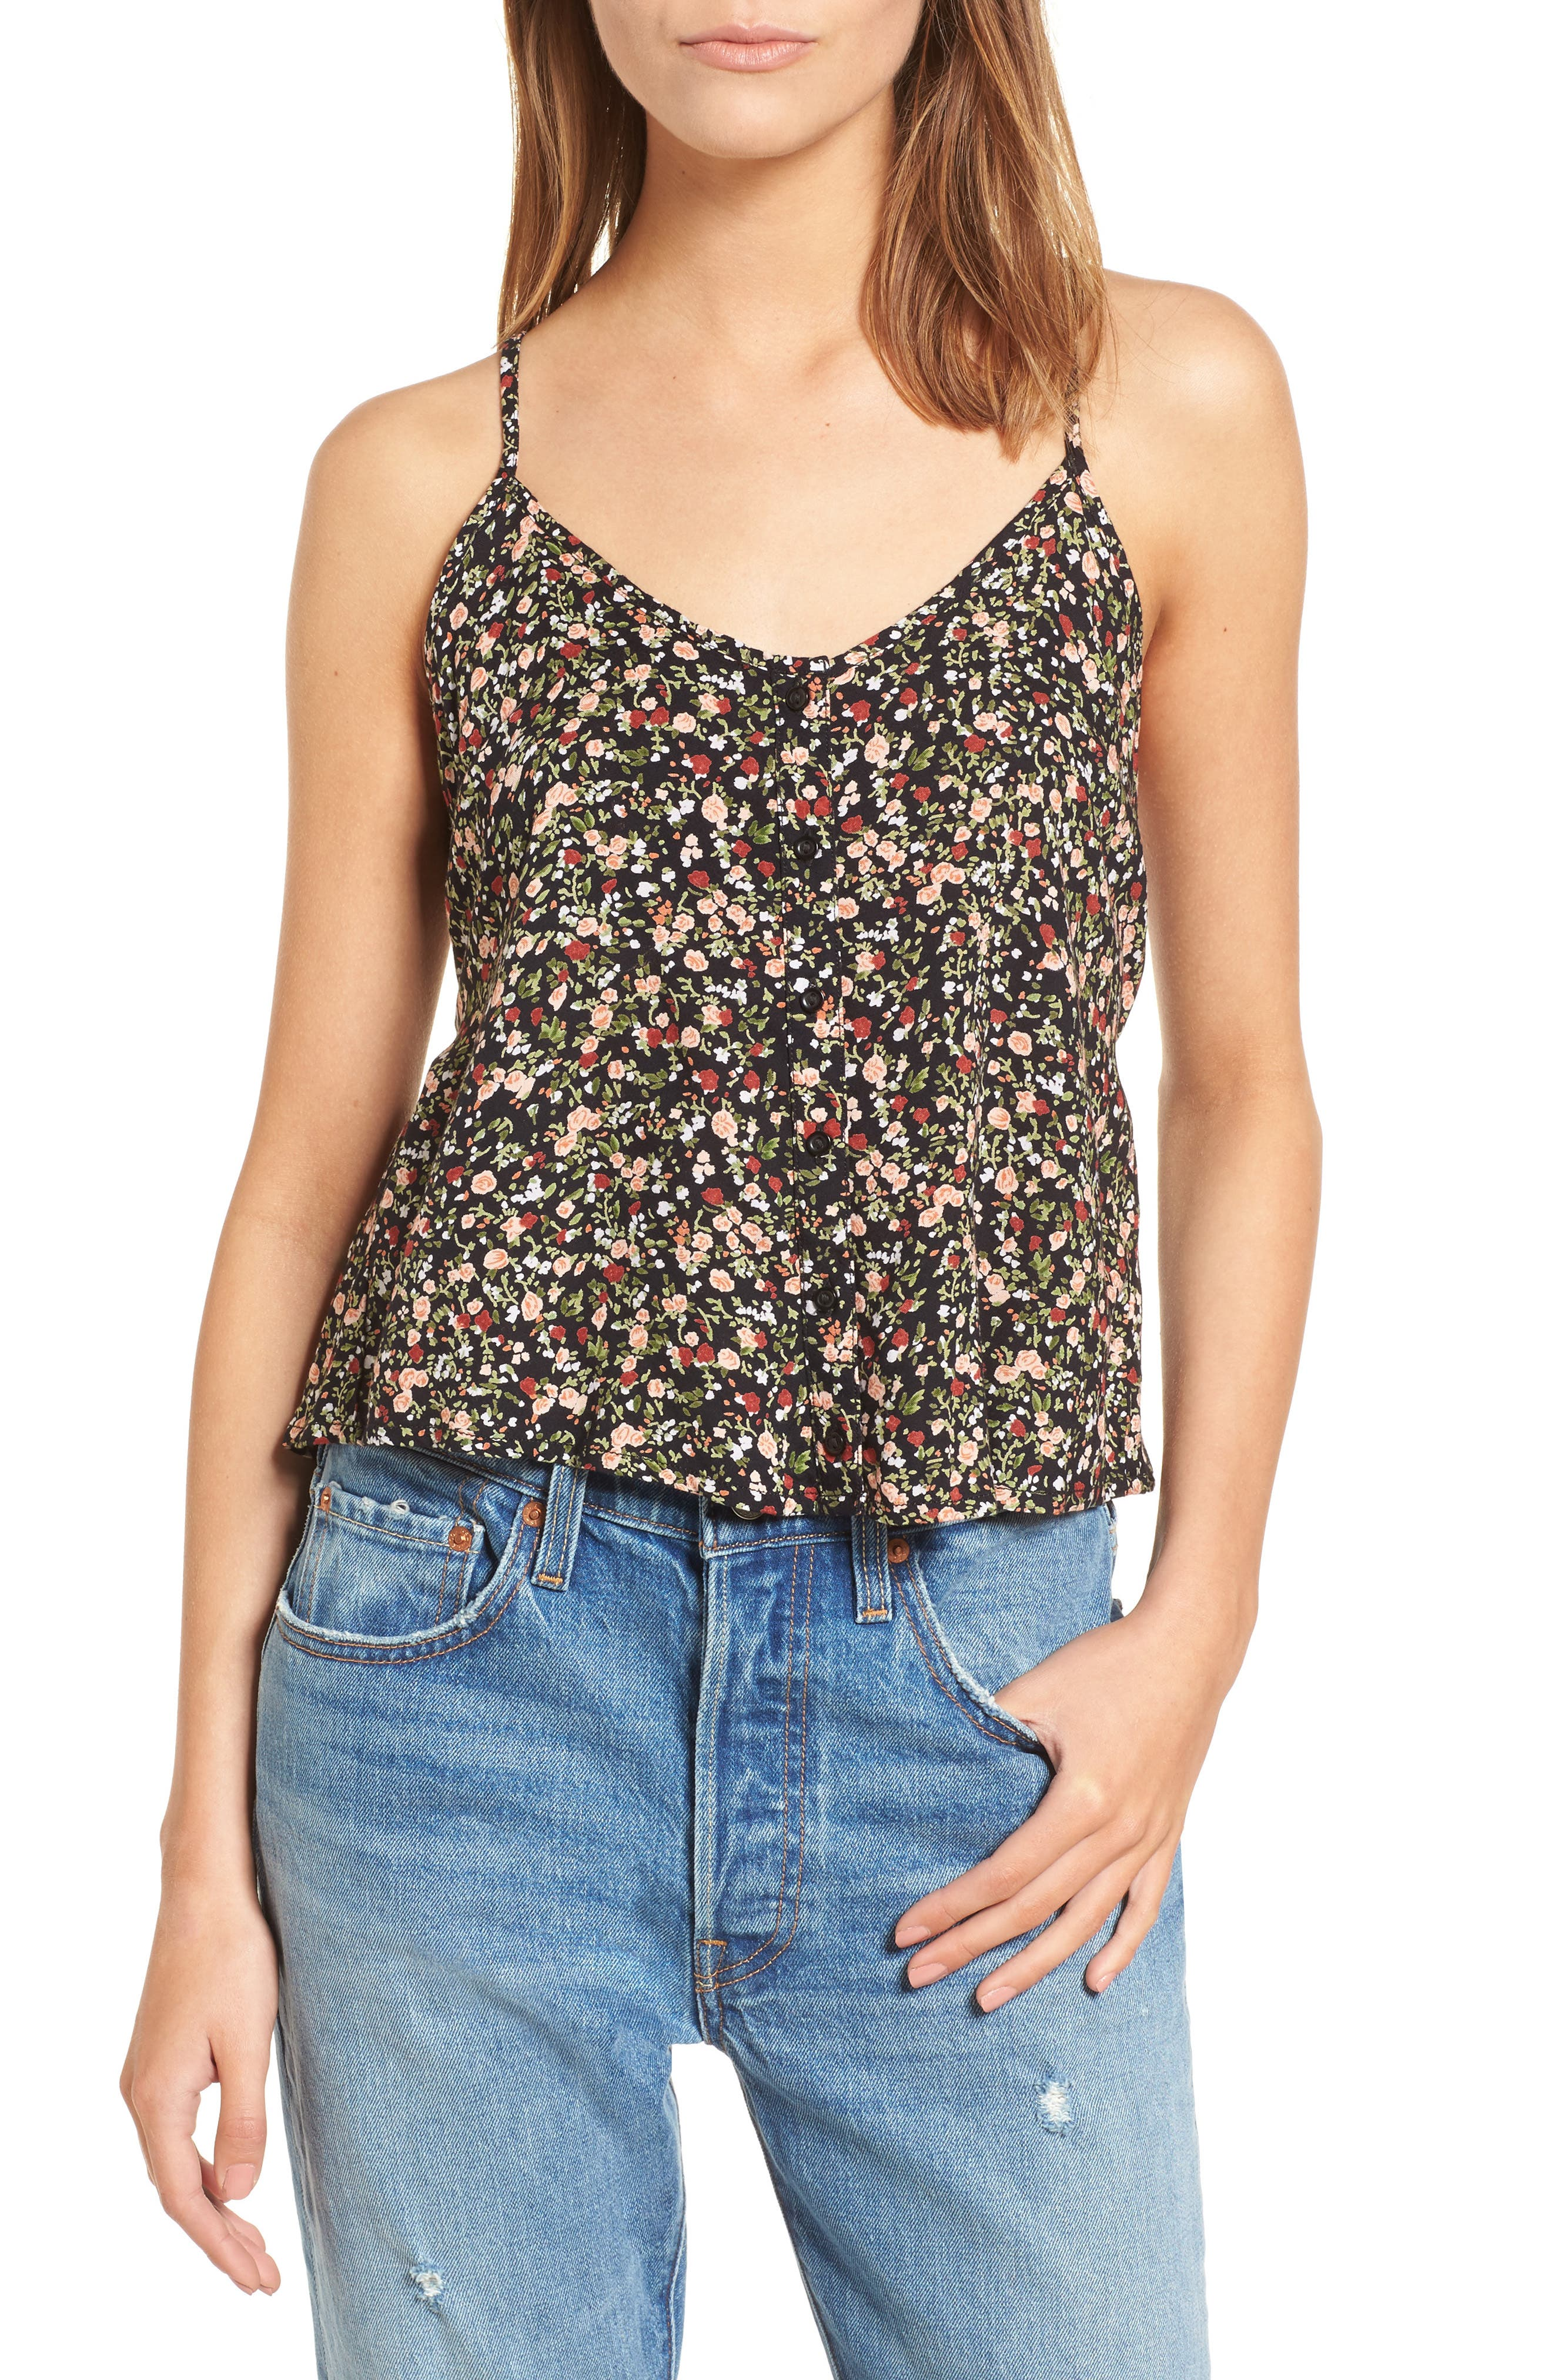 Obey Chase Floral Print Tank Top